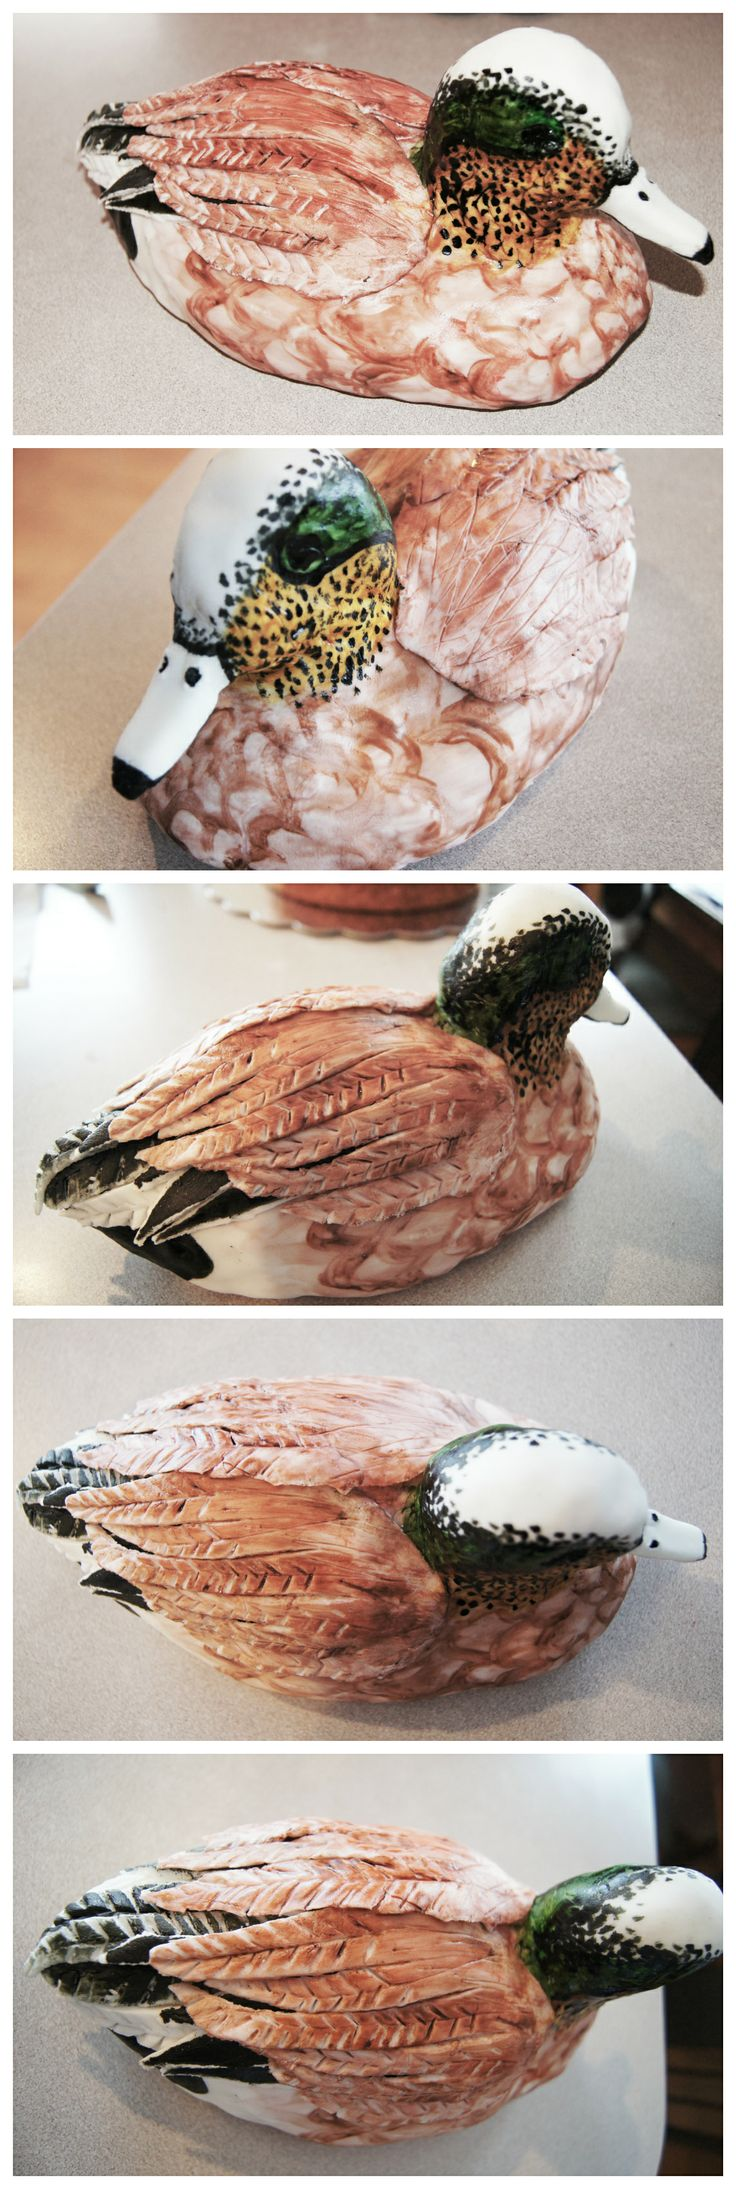 Widgeon made of rice krispie treats and fondant. Hand painted with food coloring. #Duck #Cake #Hunting